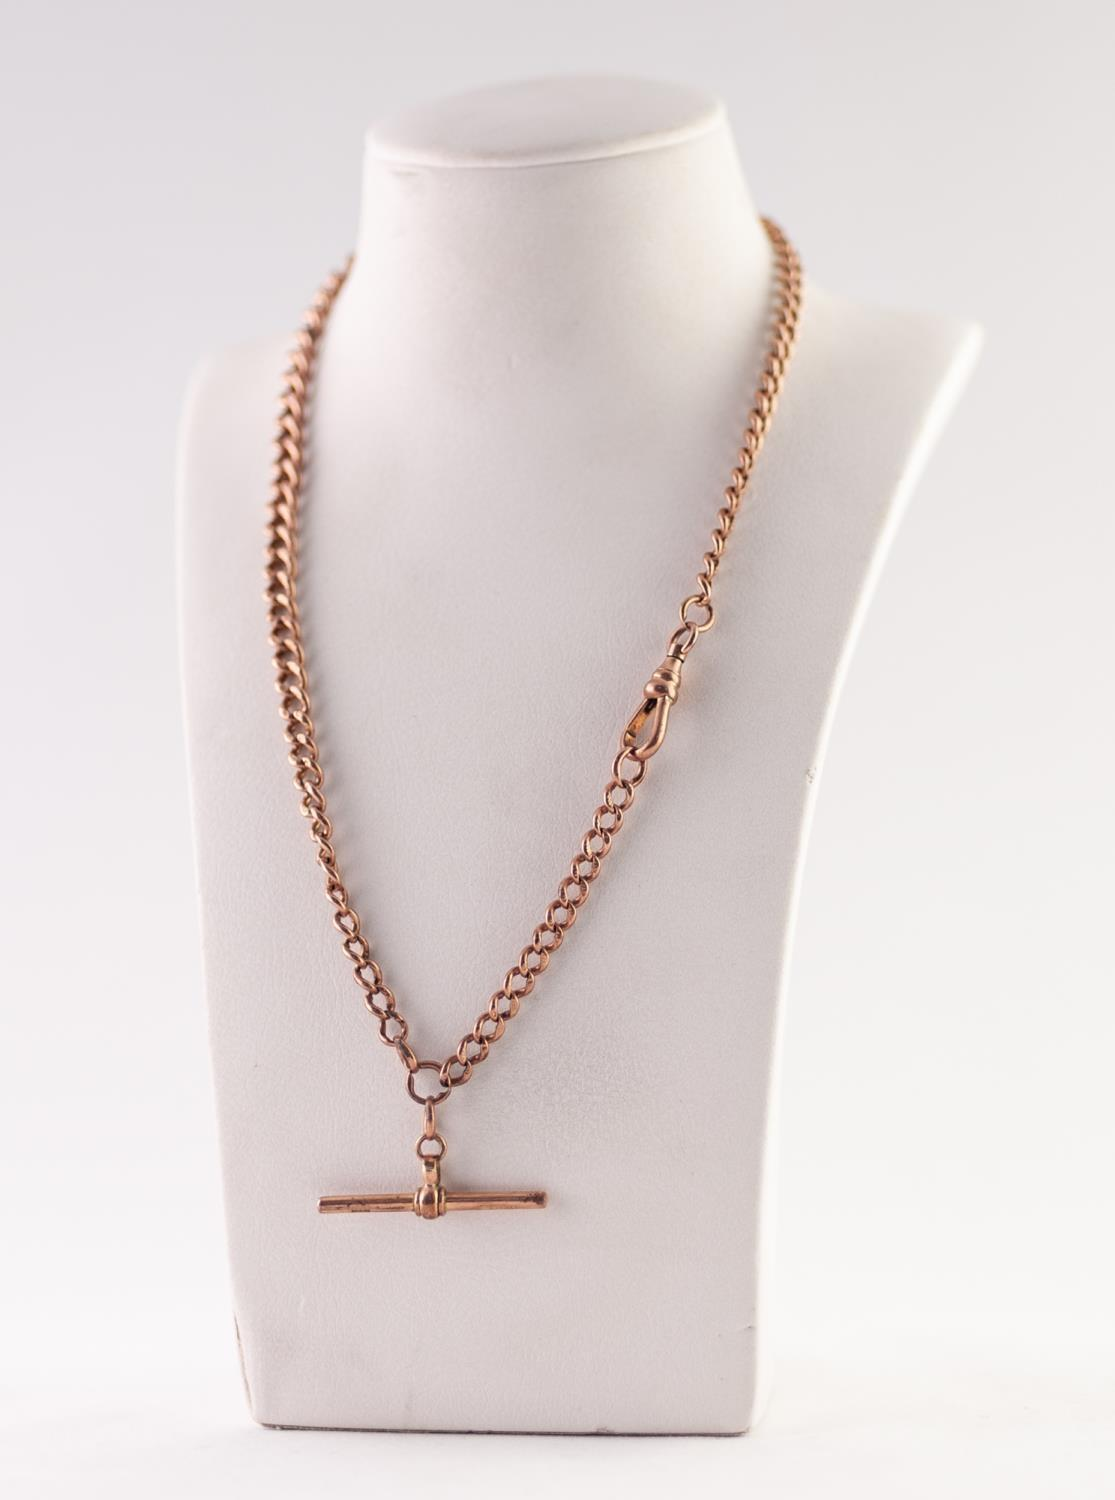 Lot 214 - 9ct GOLD GRADUATED CURB LINK ALBERT CHAIN, with T-bar and clip, length 40cm, 25.5g